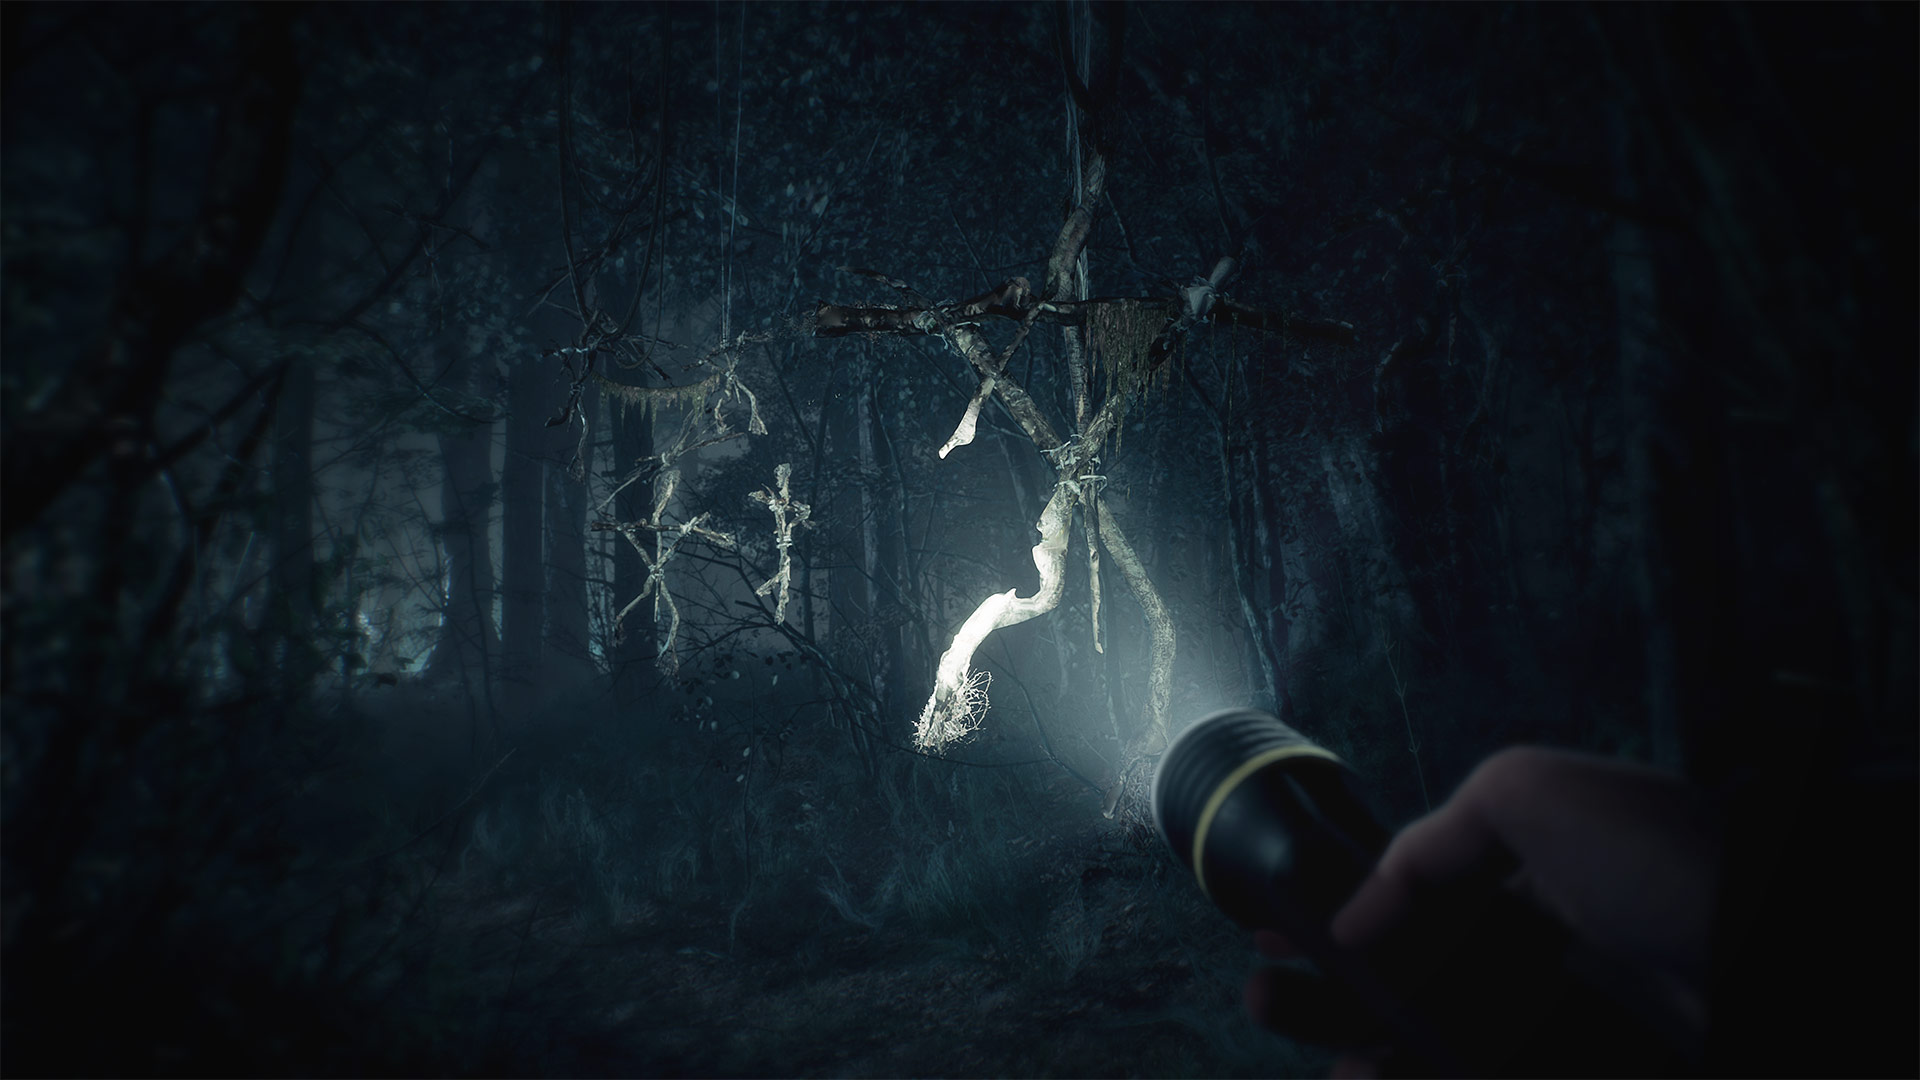 Things get seriously weird in the latest Blair Witch trailer